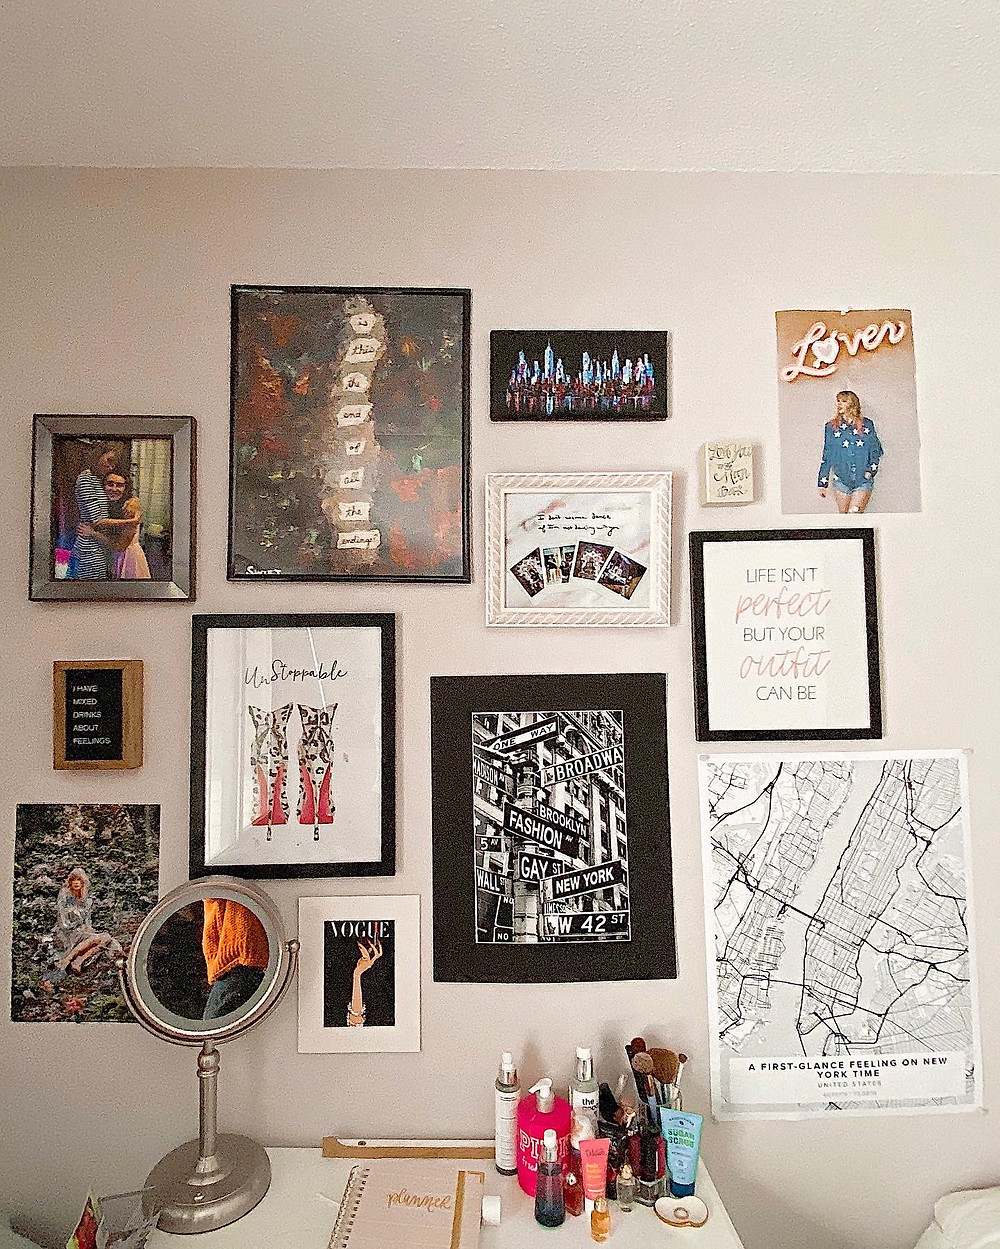 A gallery wall created by Abby Graf - The Bleached Curl